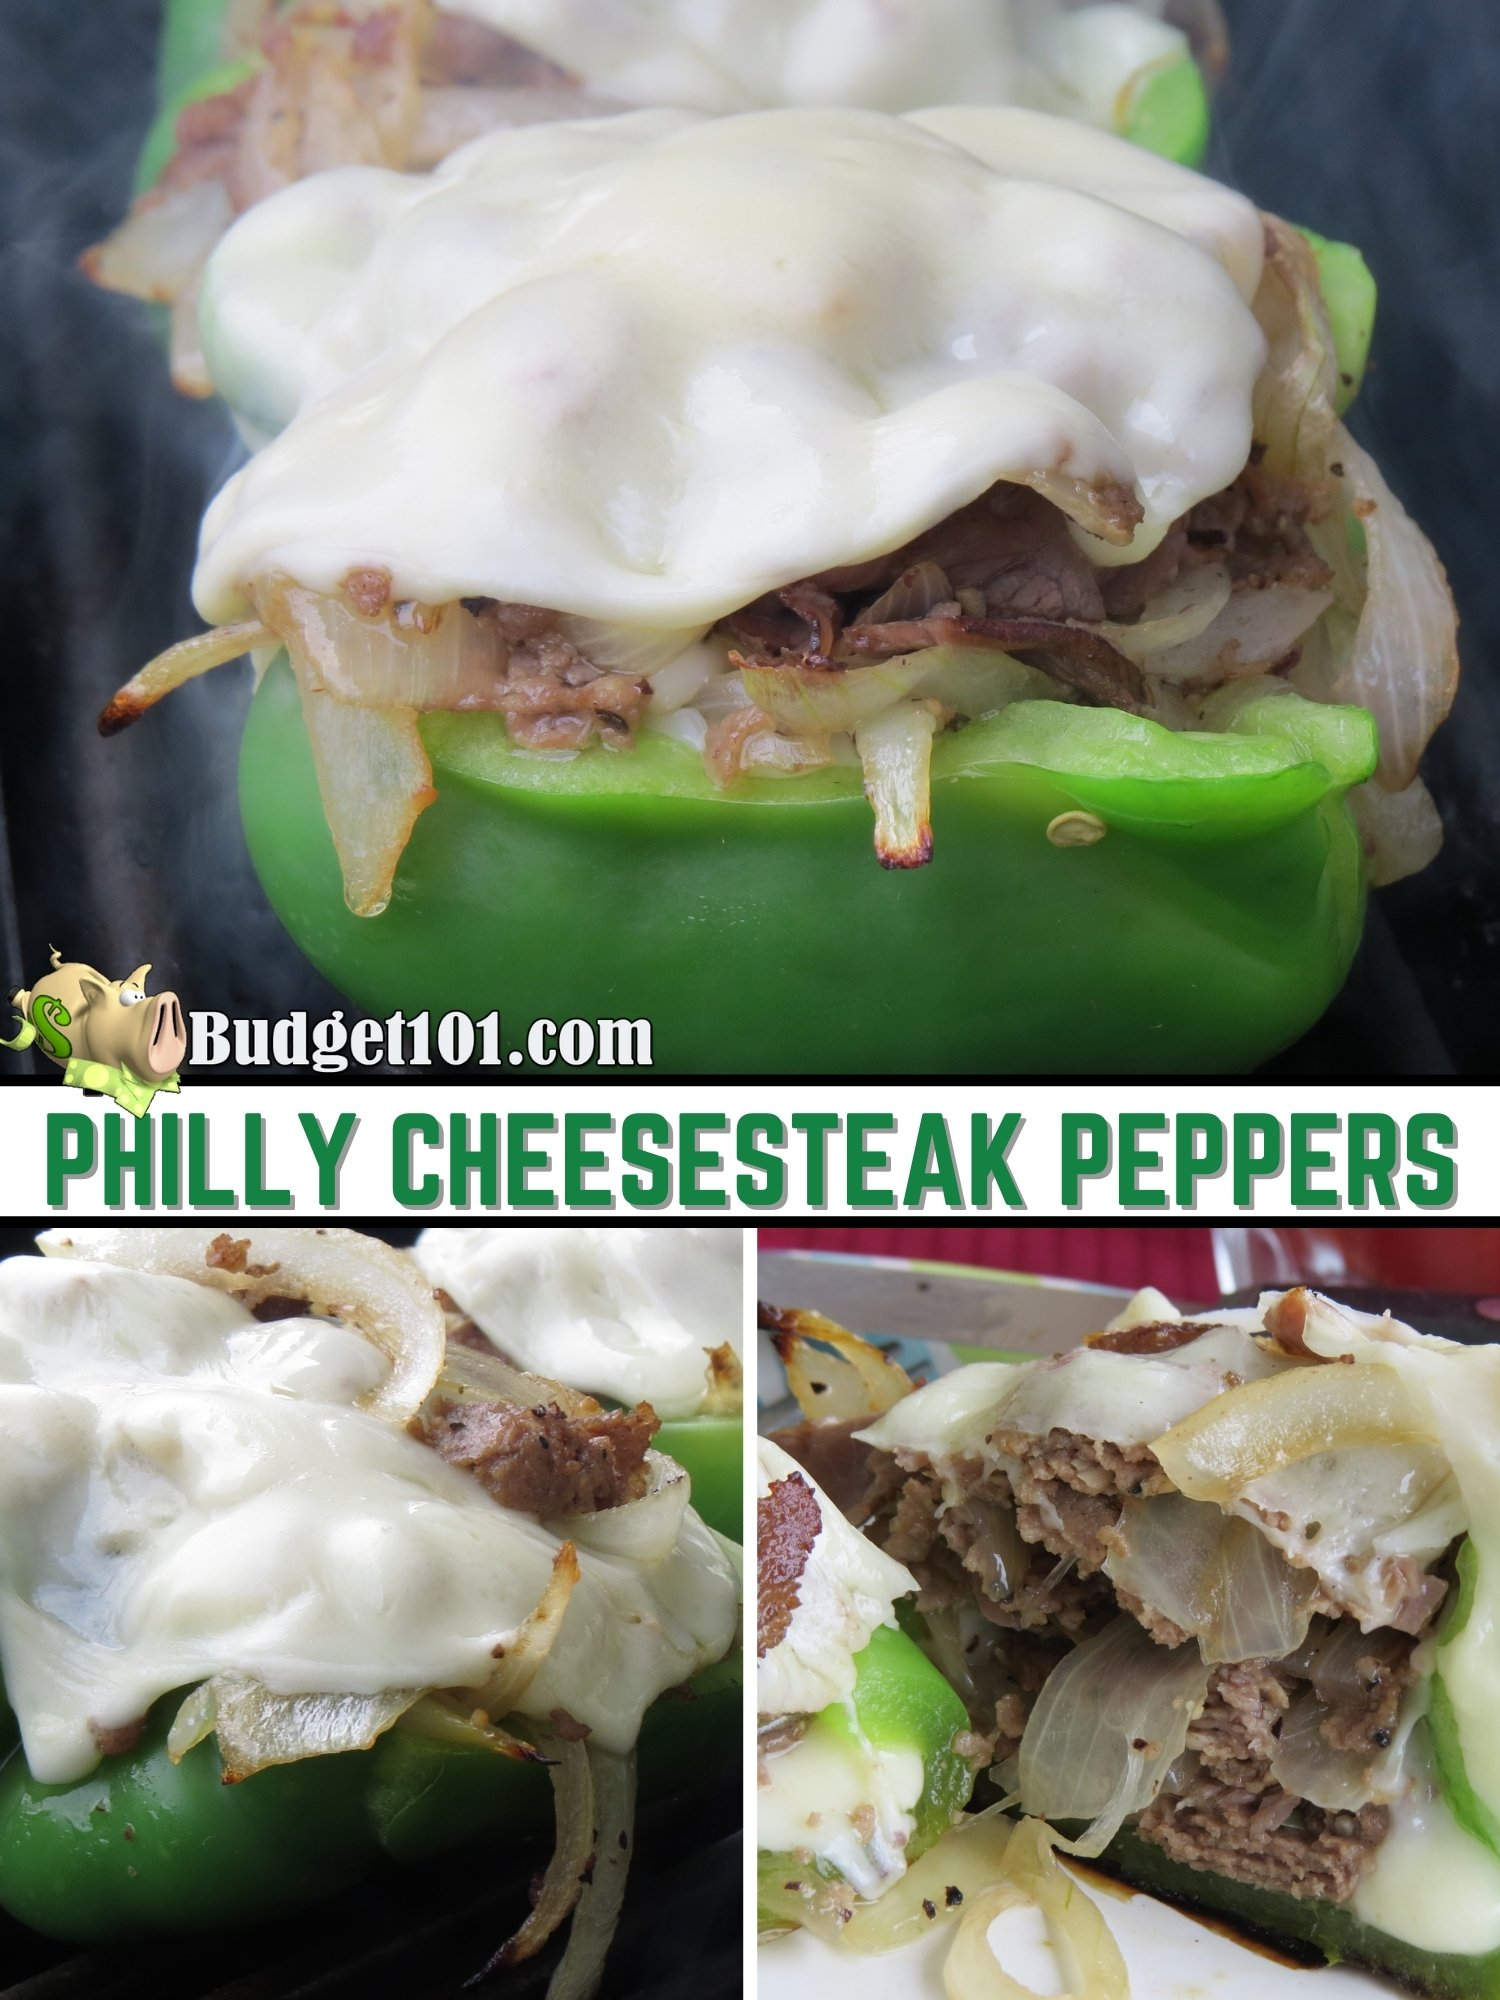 Philly Cheesesteak Peppers- bell peppers stuffed with caramelized onions, cheese, tender morsels of beef and seasoning, then grilled to perfection! #Budget101 #Leftovers #PhillyCheesesteak #KetoRecipe #Keto